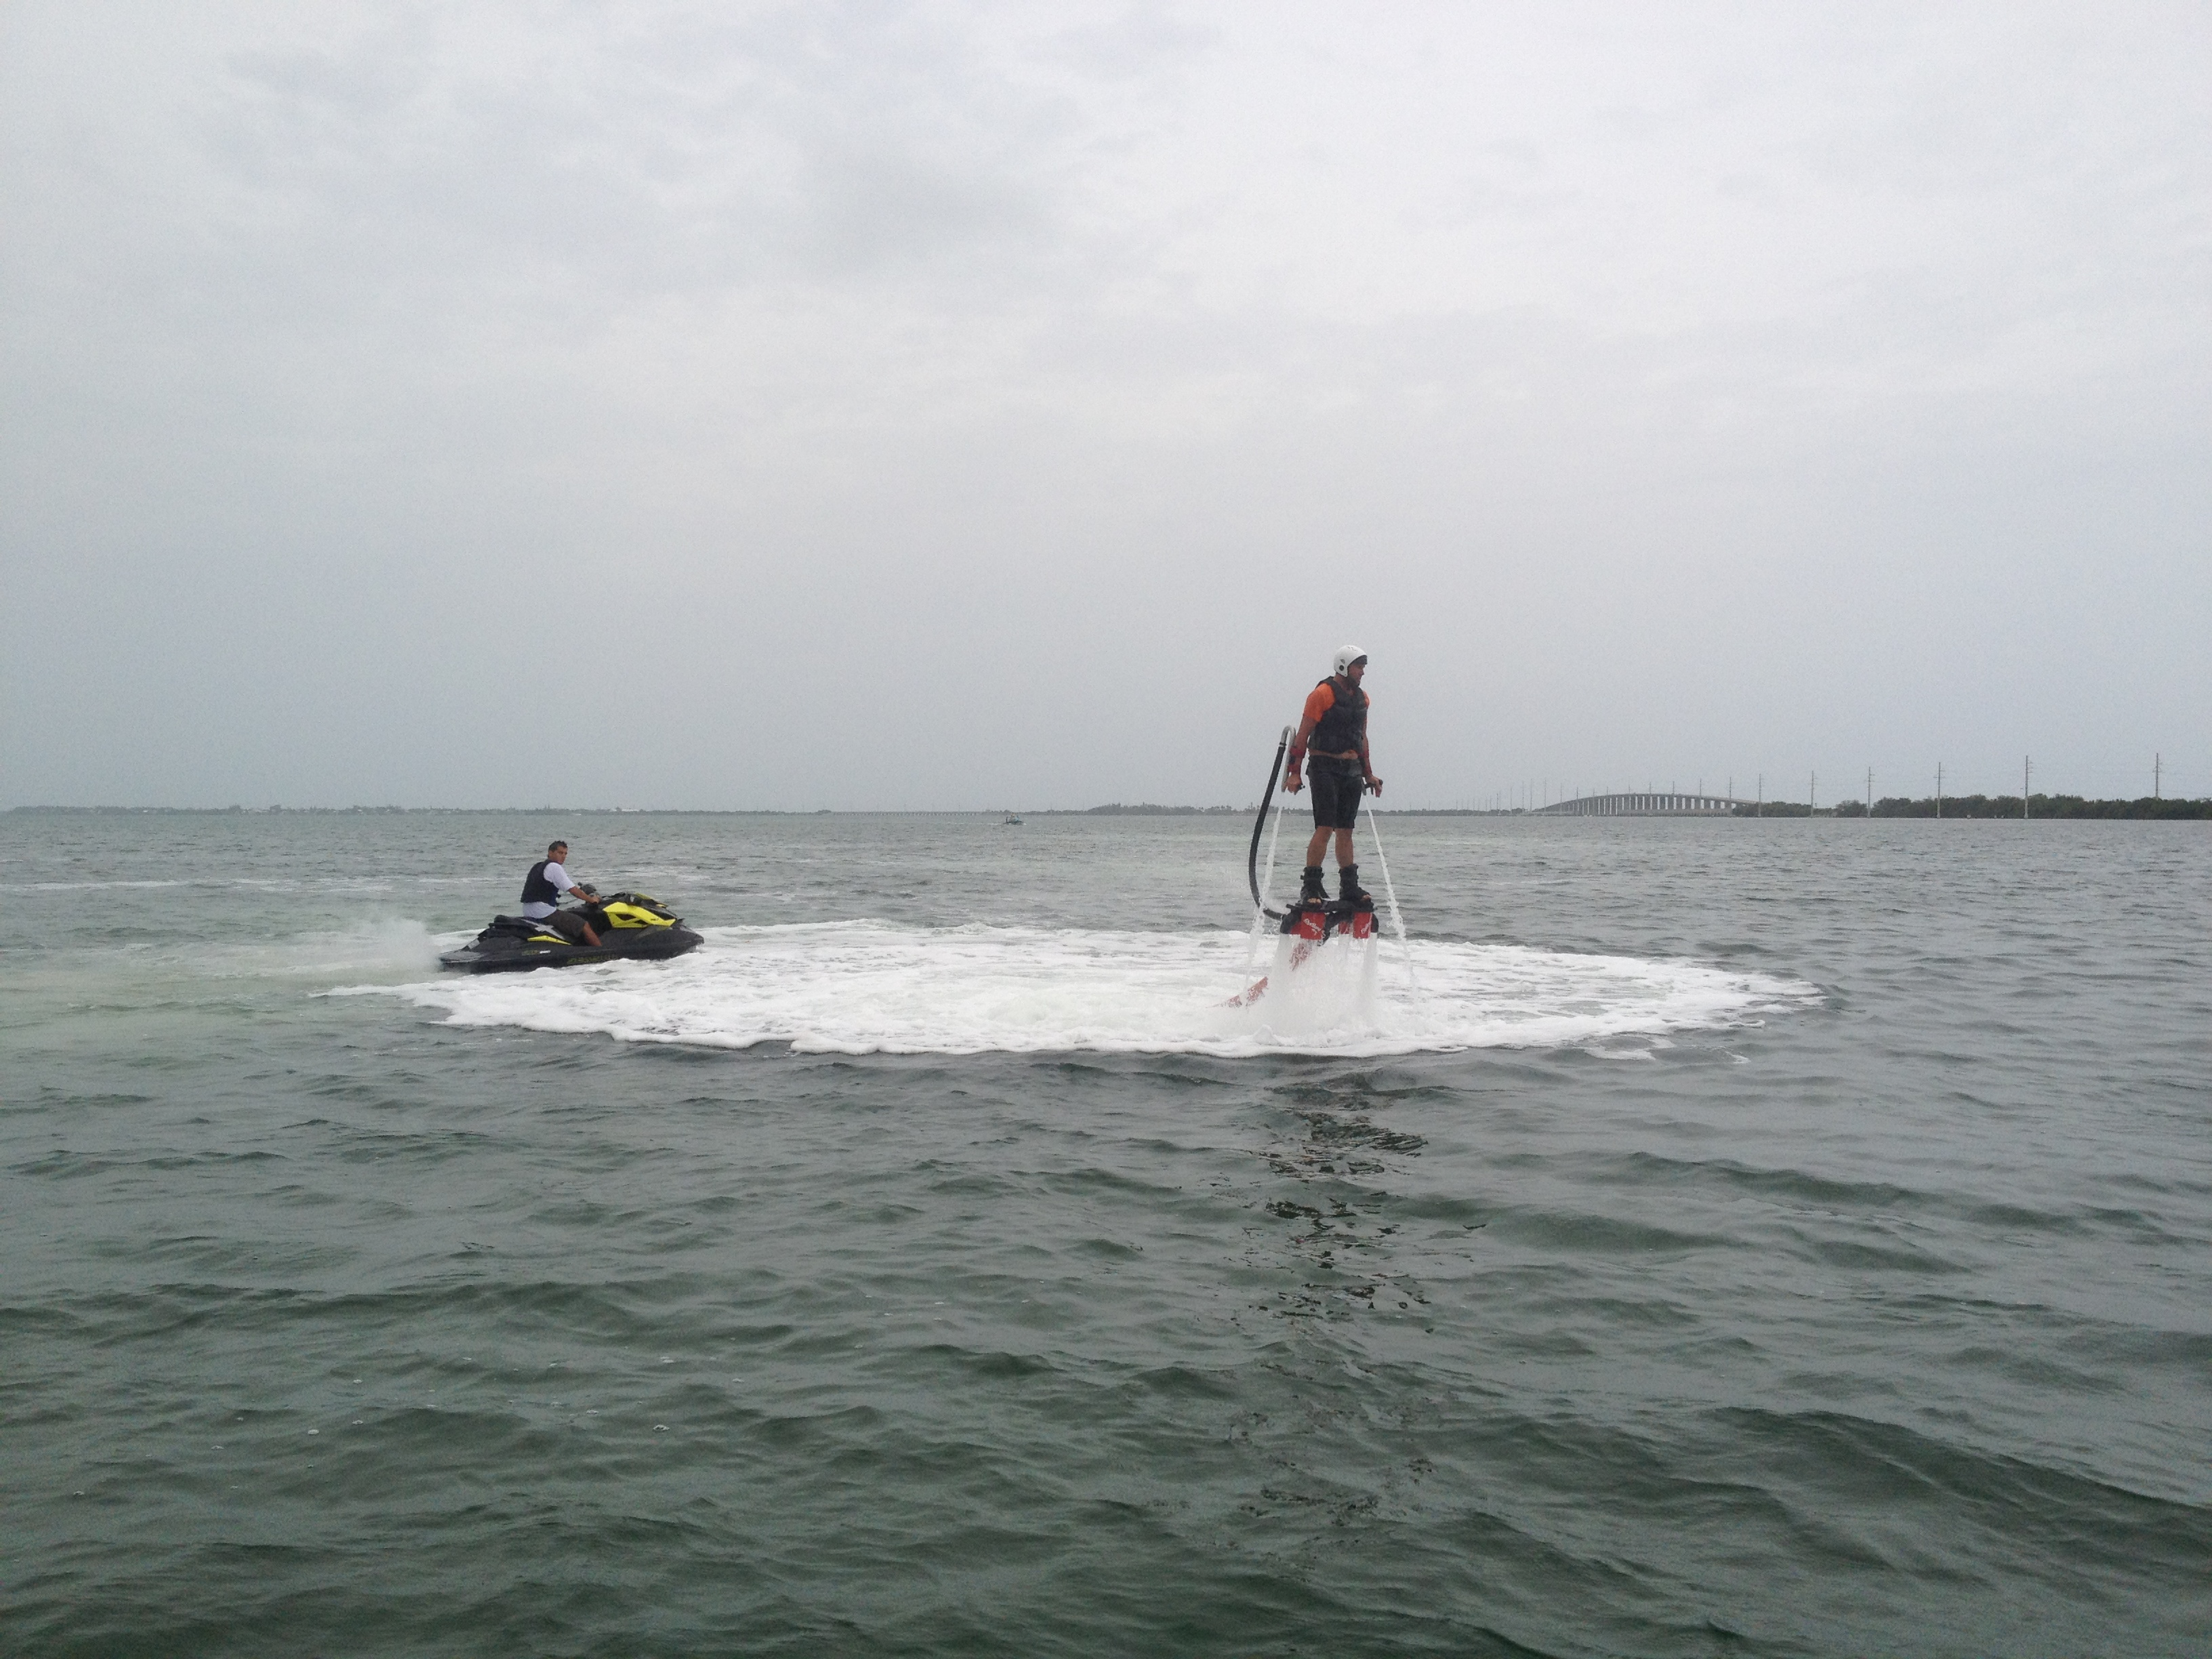 A Low Hover on the Flyboard